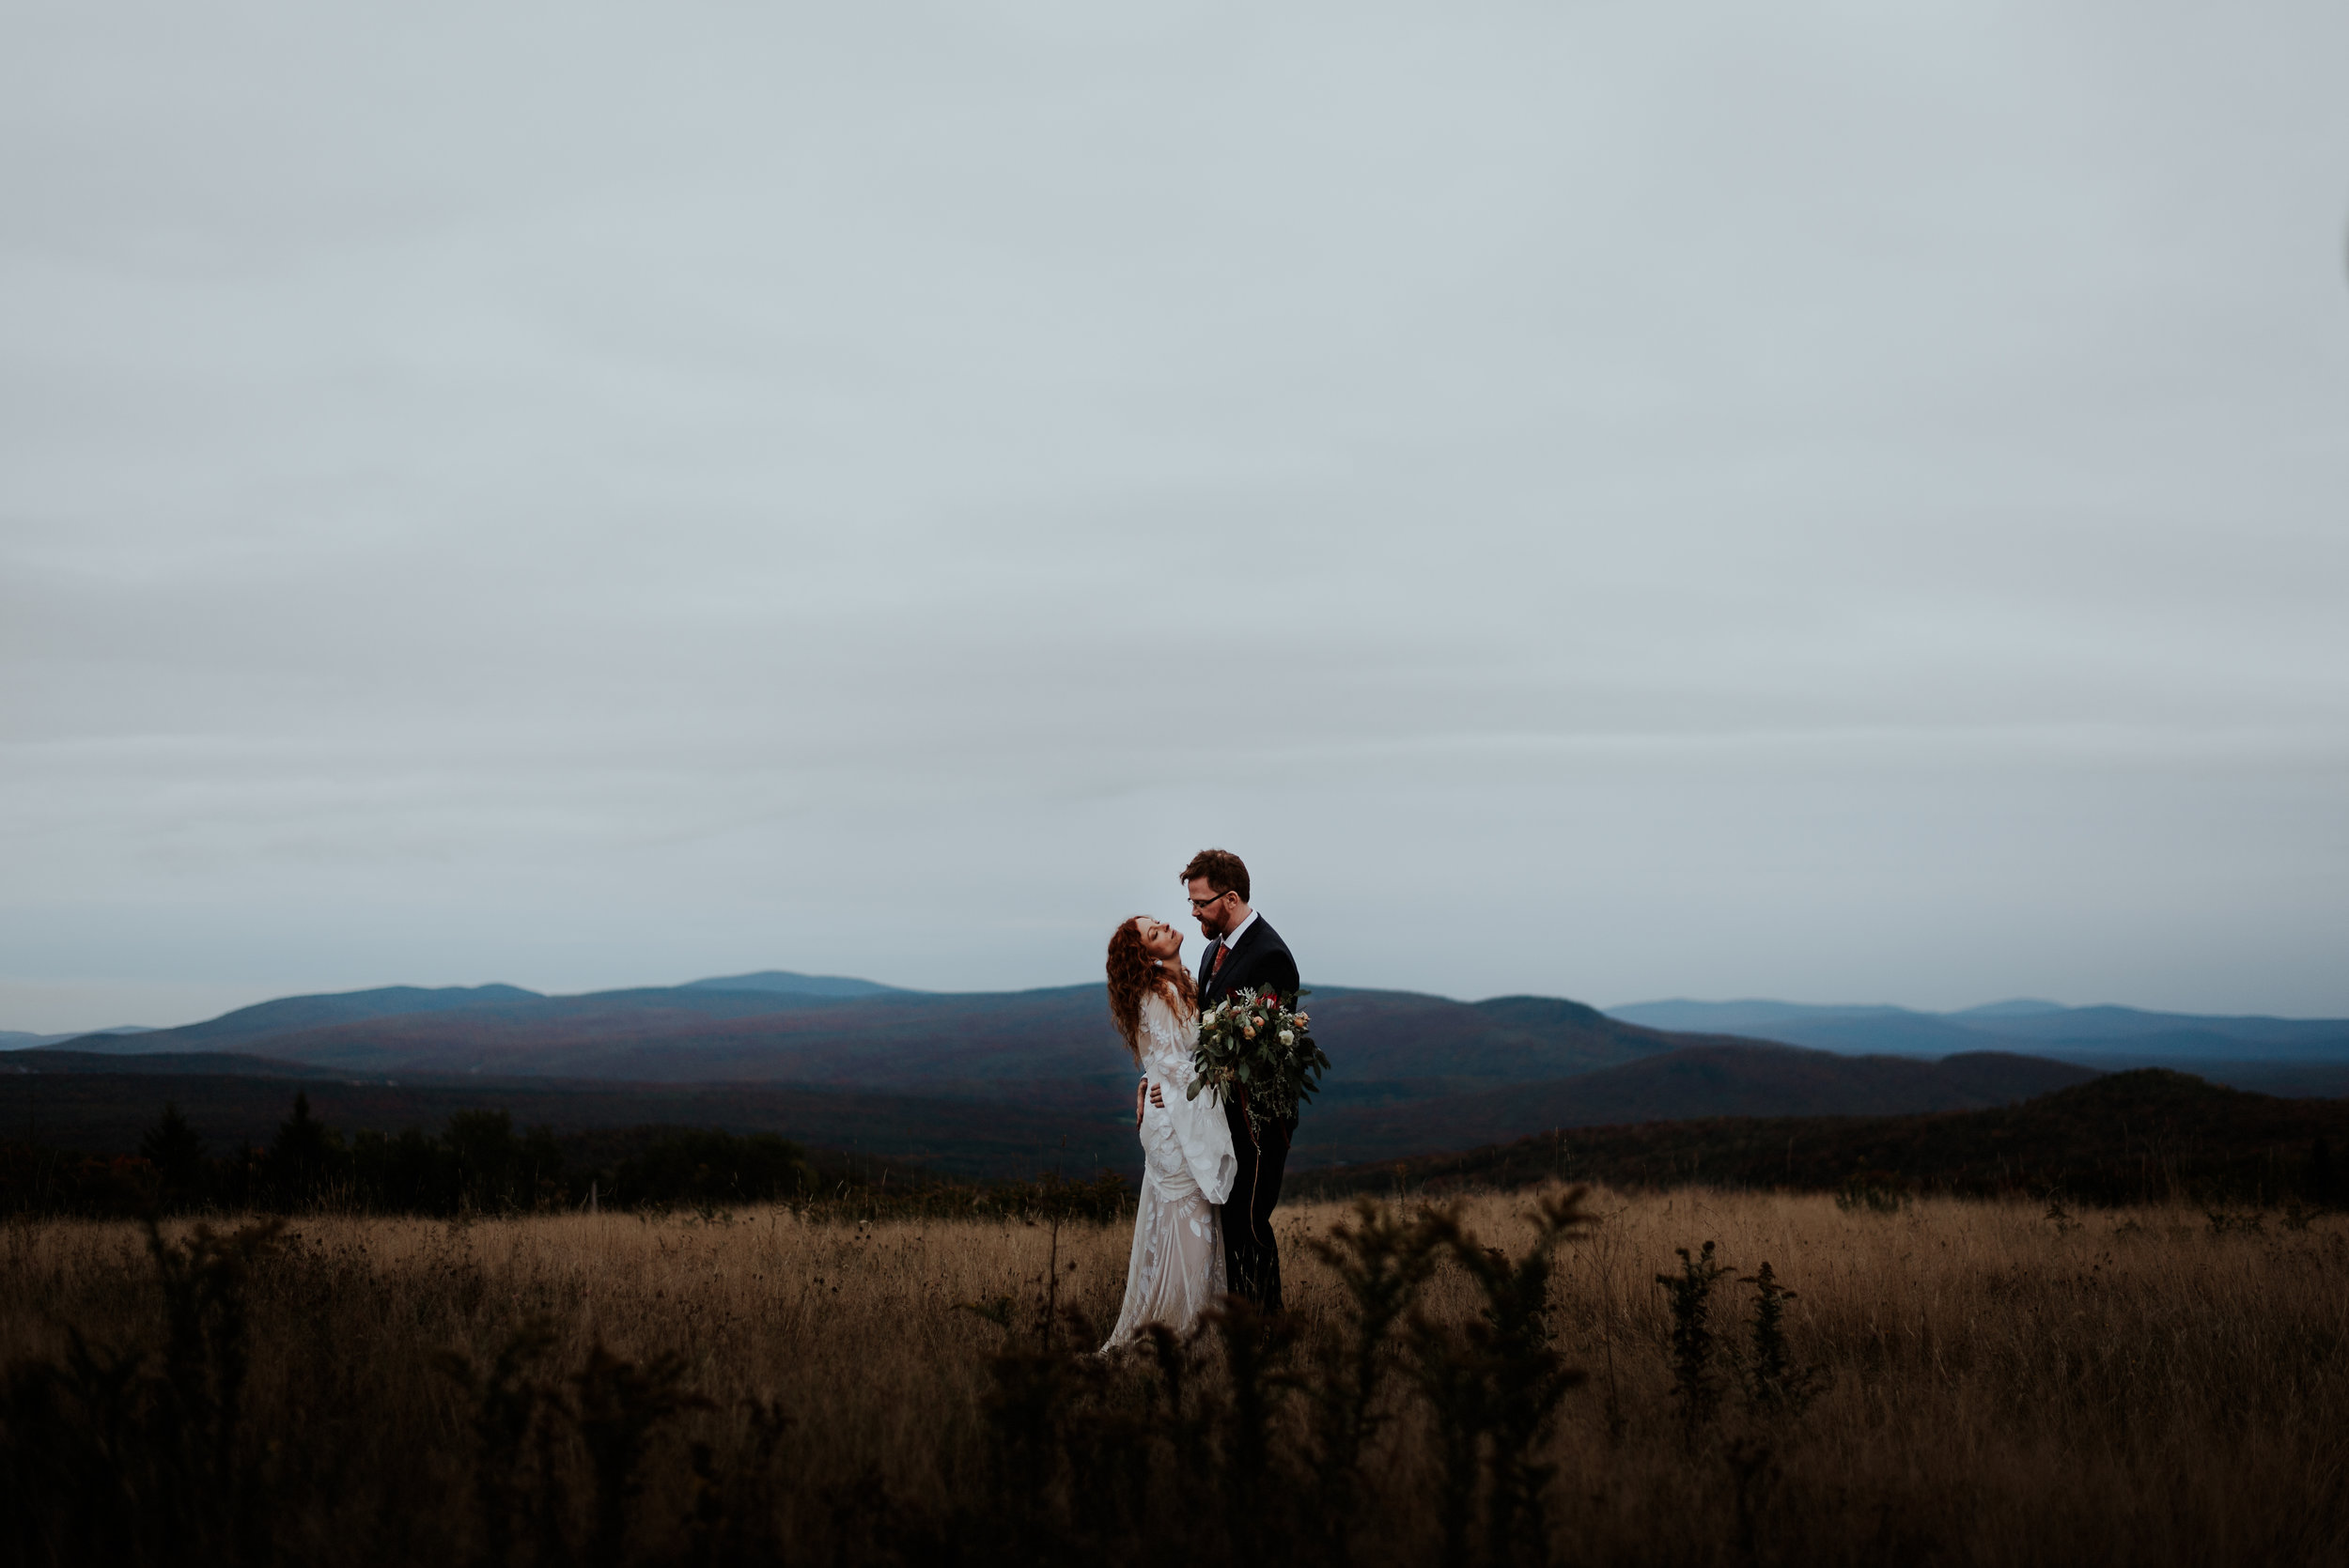 wildsoulsstudio-intimate woodland wedding-the little farm at willoughby-p-50.jpg